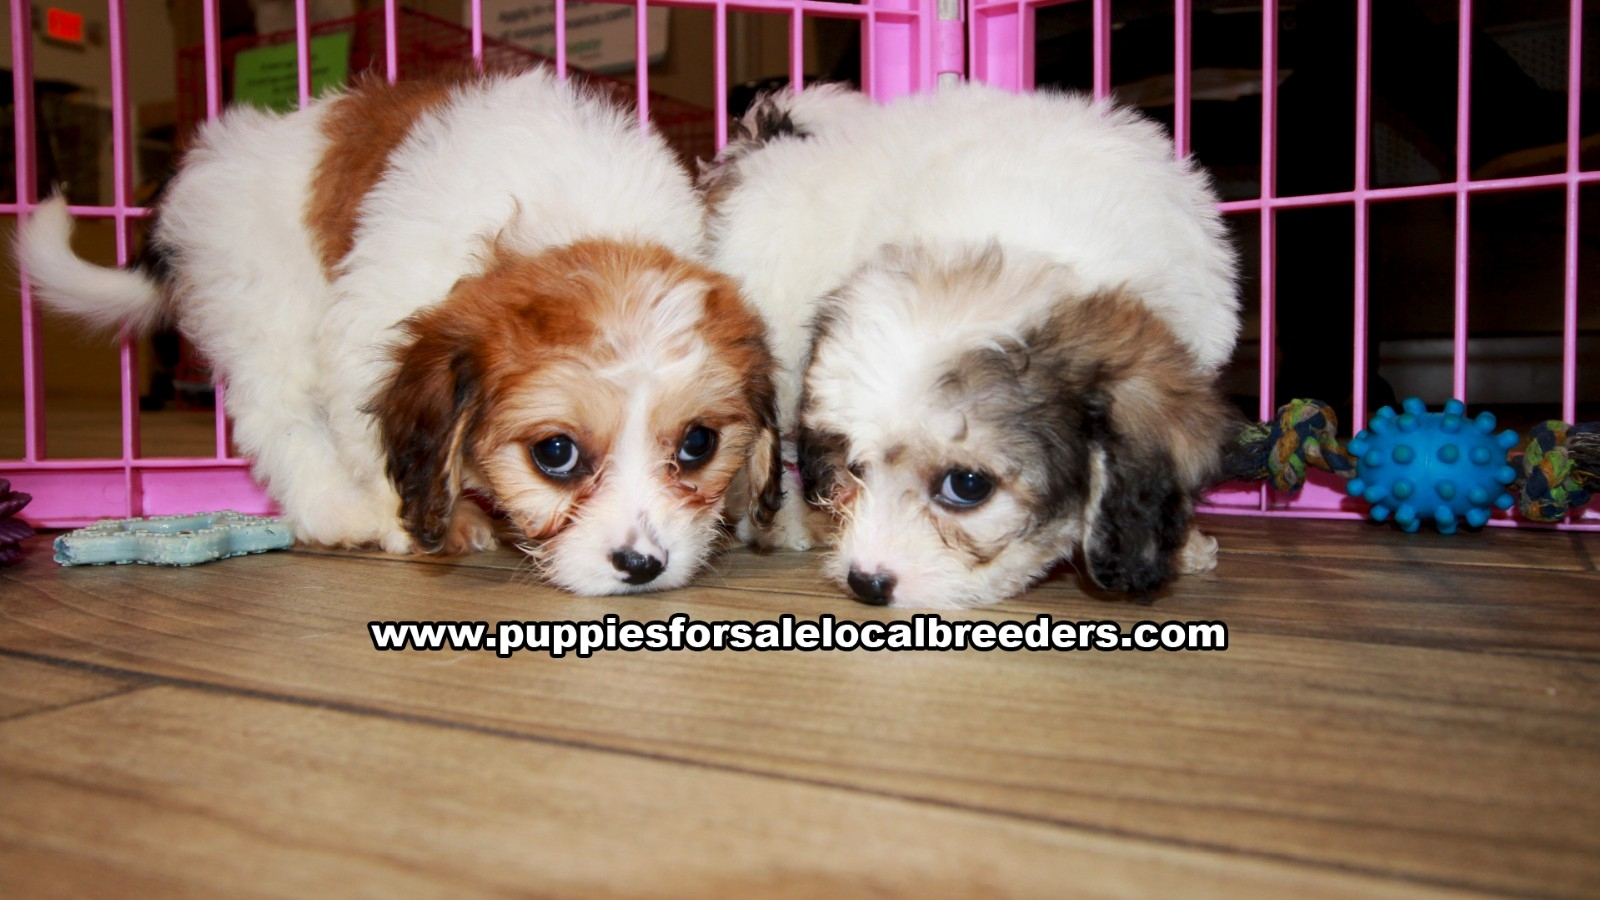 Cavachon, Puppies For Sale In Georgia, Local Breeders, Near Atlanta, Ga